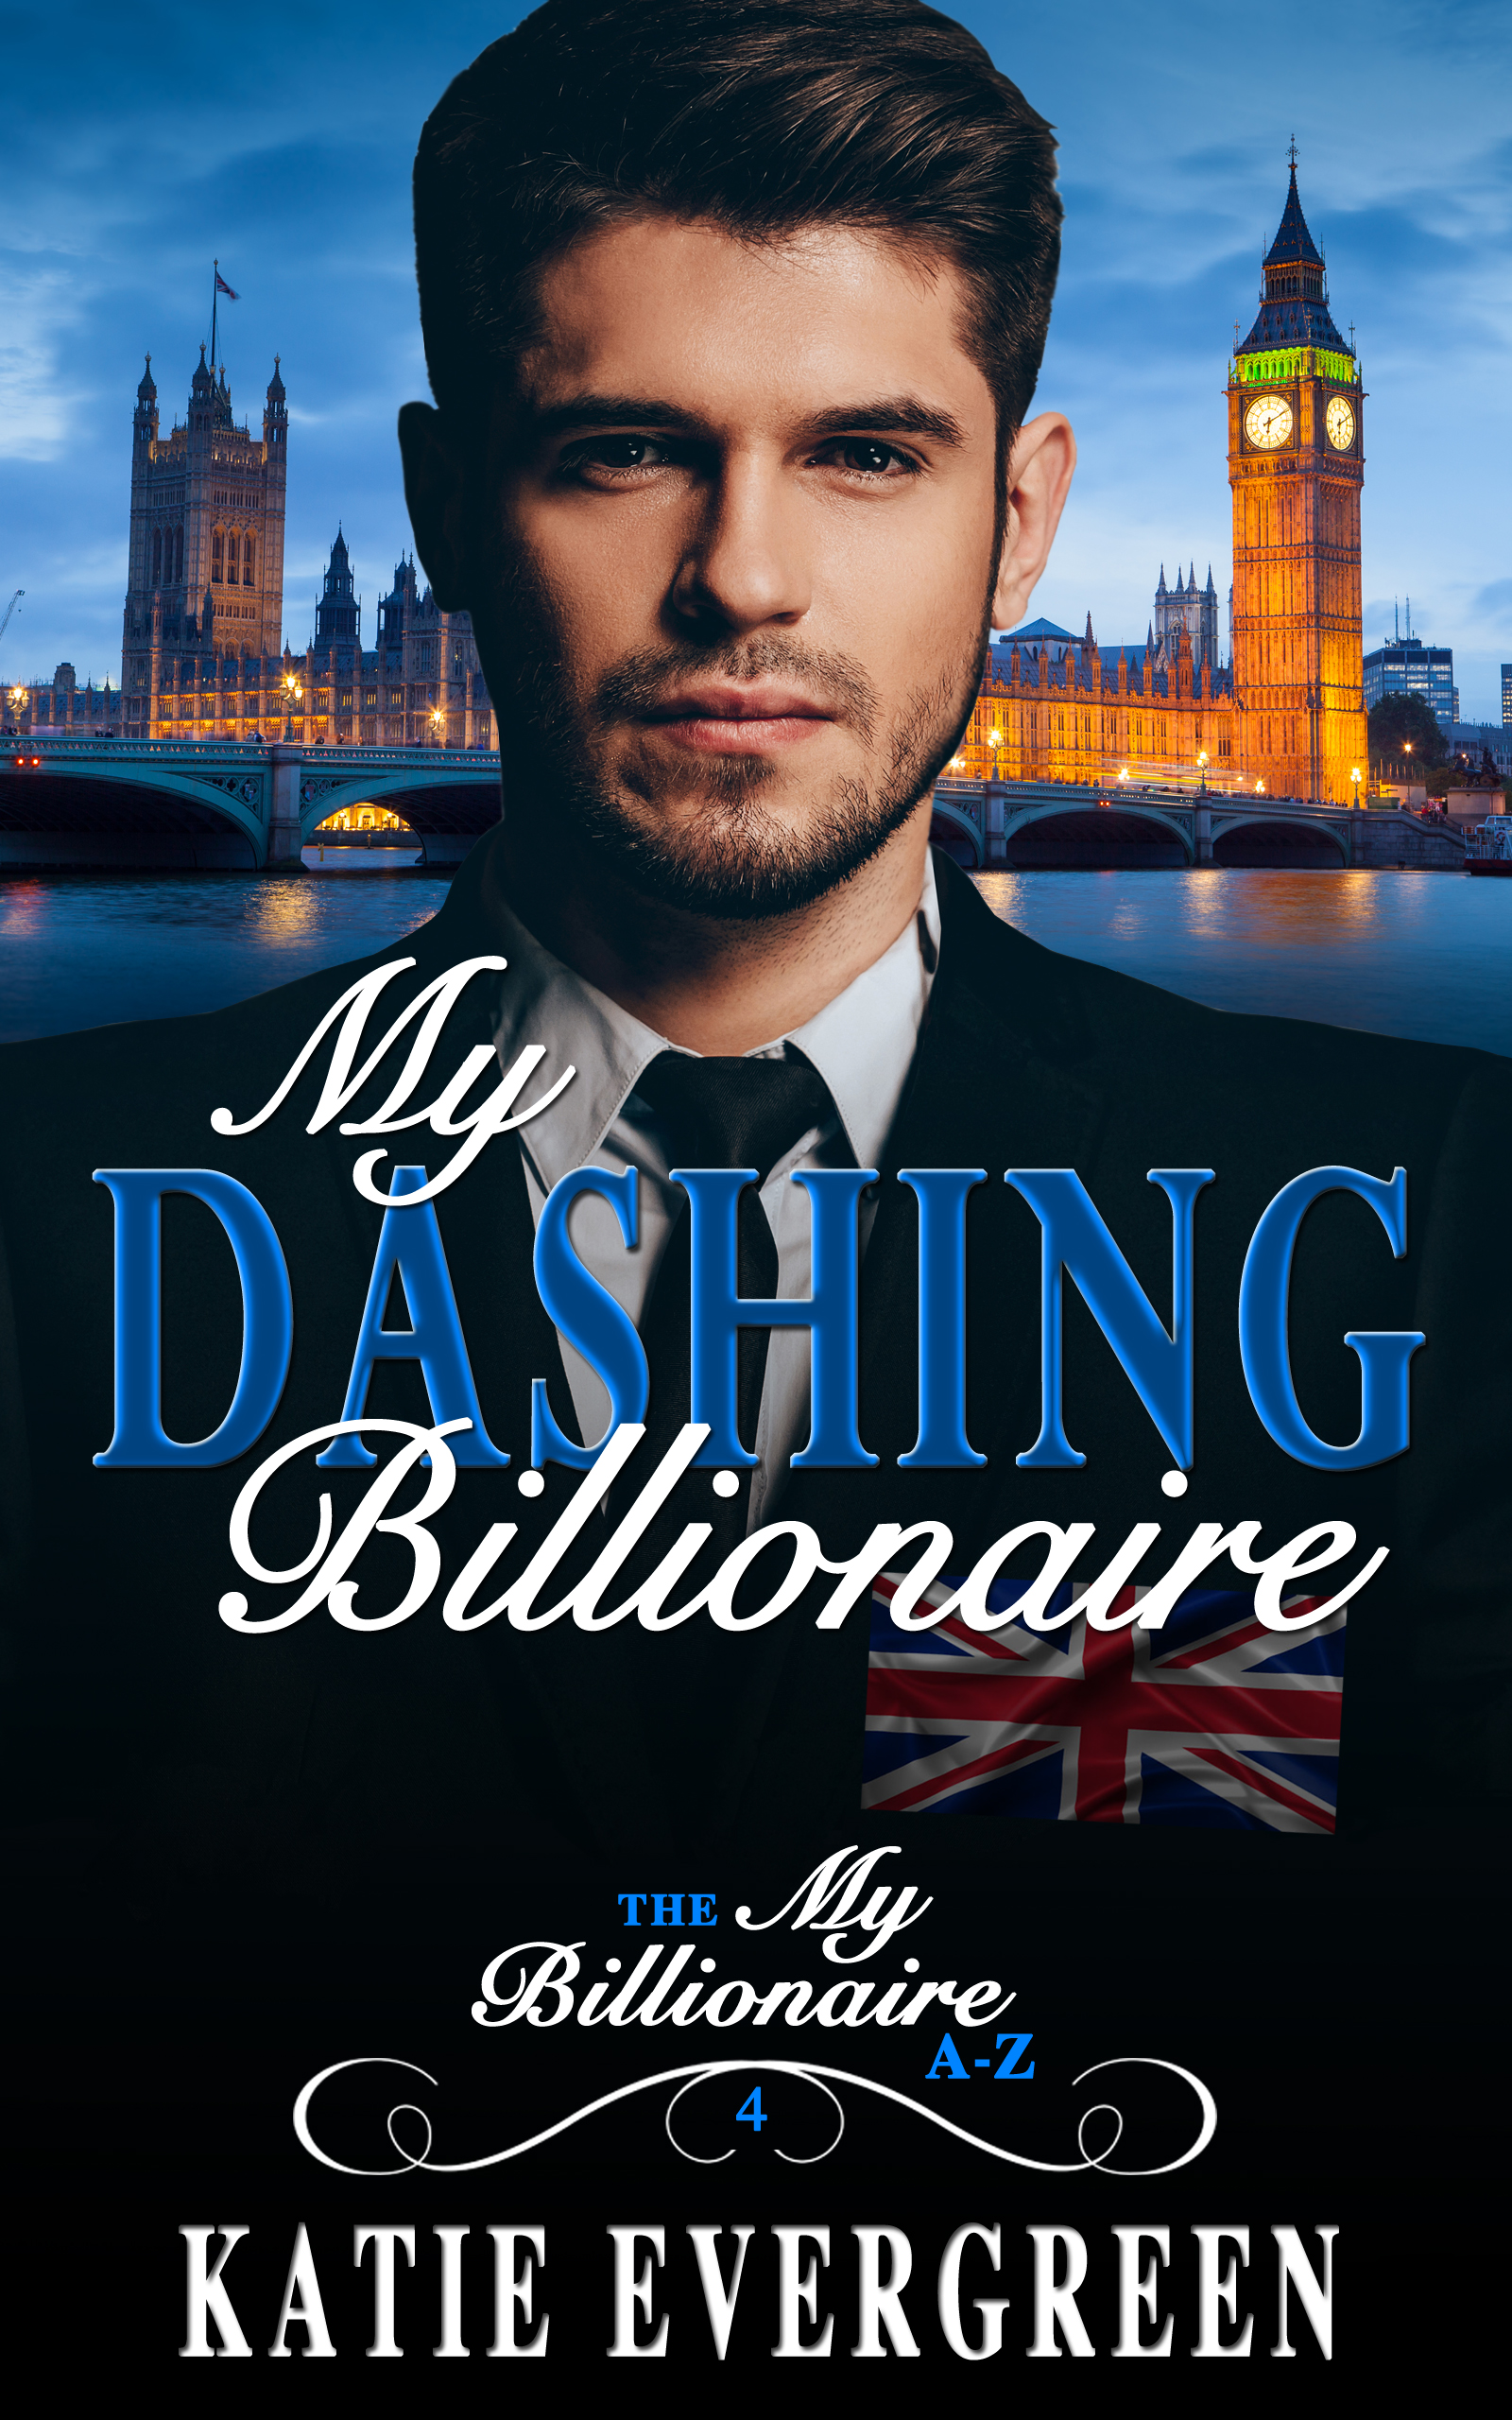 My Dashing Billionaire. - A secret romance that could rock the very fabric of the royal household.